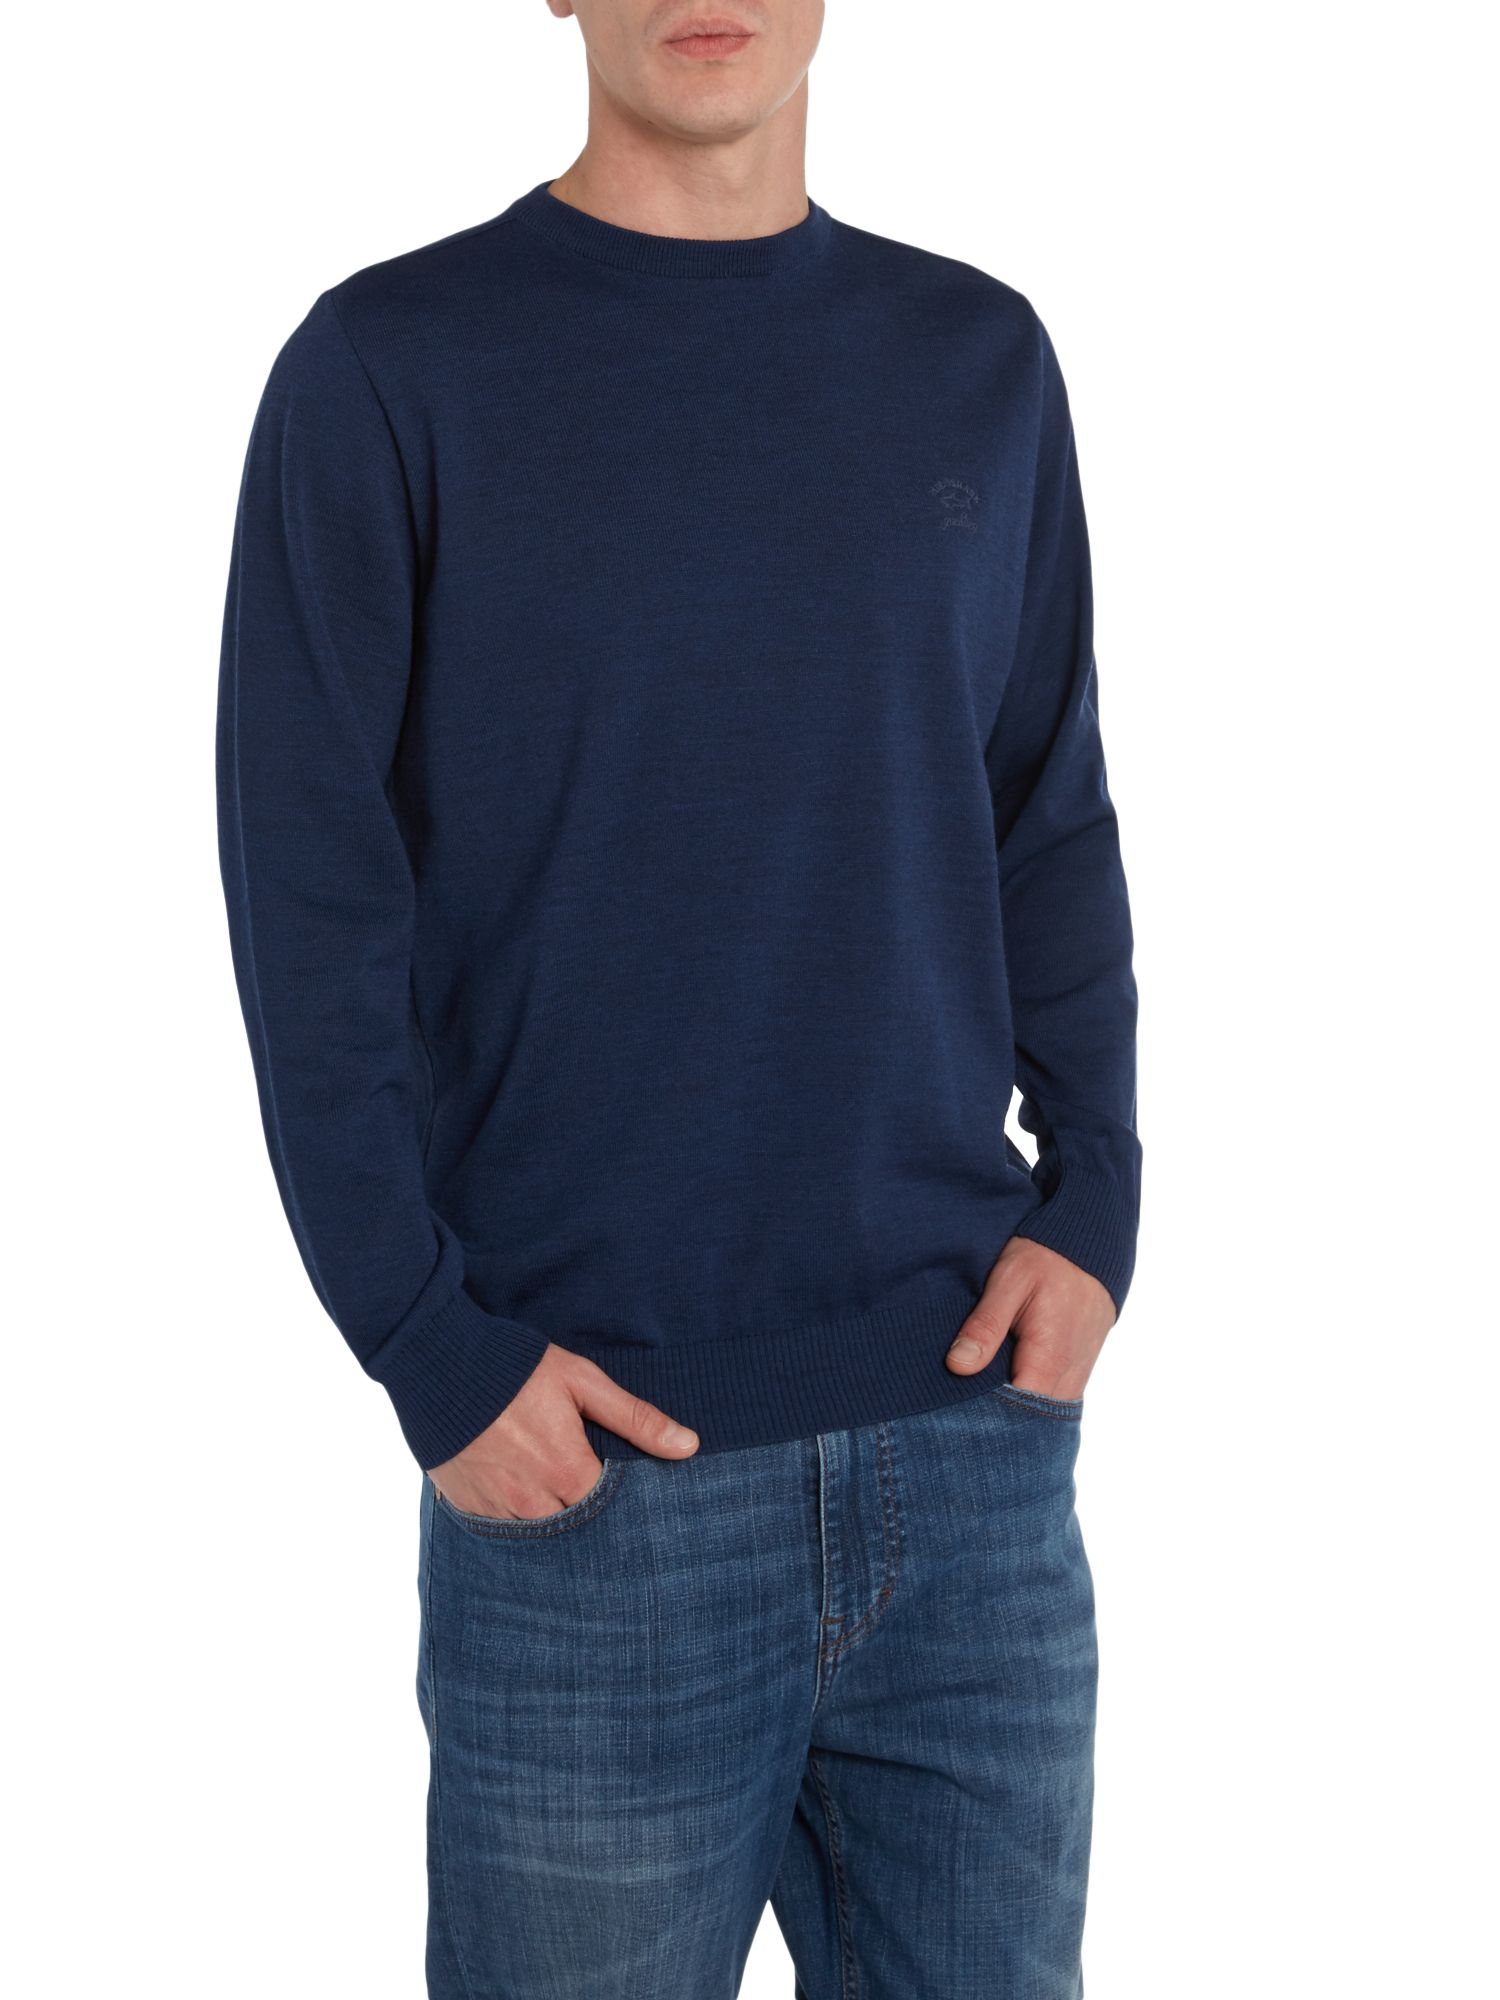 Paul & Shark plain crew neck knit